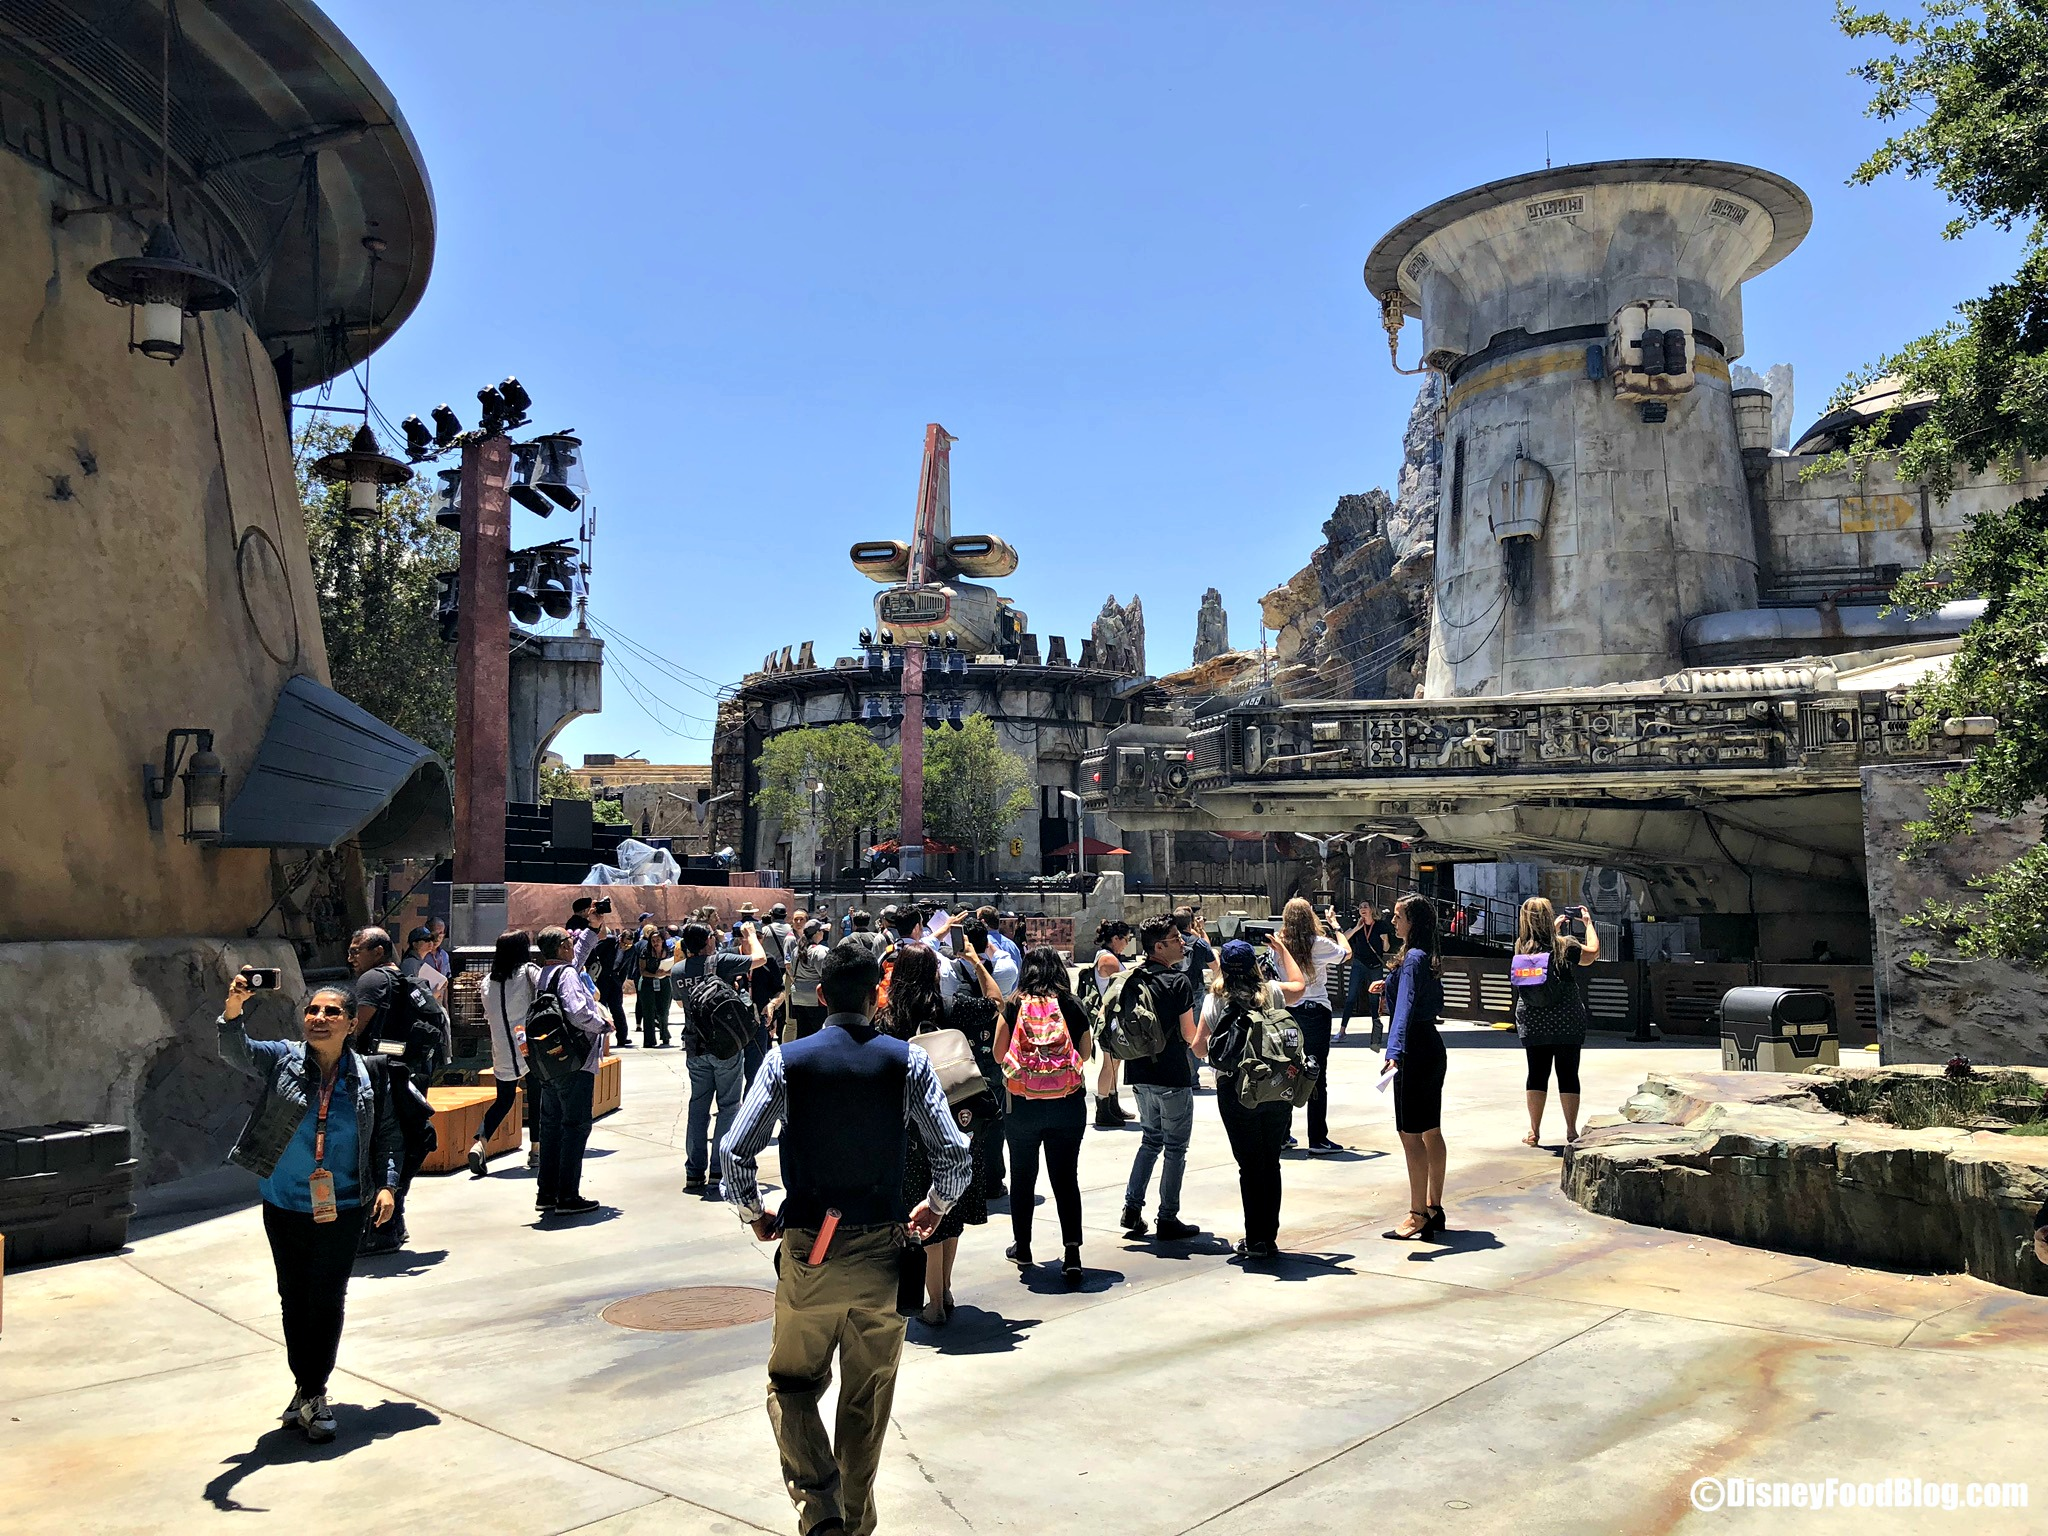 We Ve Been Inside Here S The Ultimate Guide To Disney S Star Wars Galaxy S Edge The Disney Food Blog